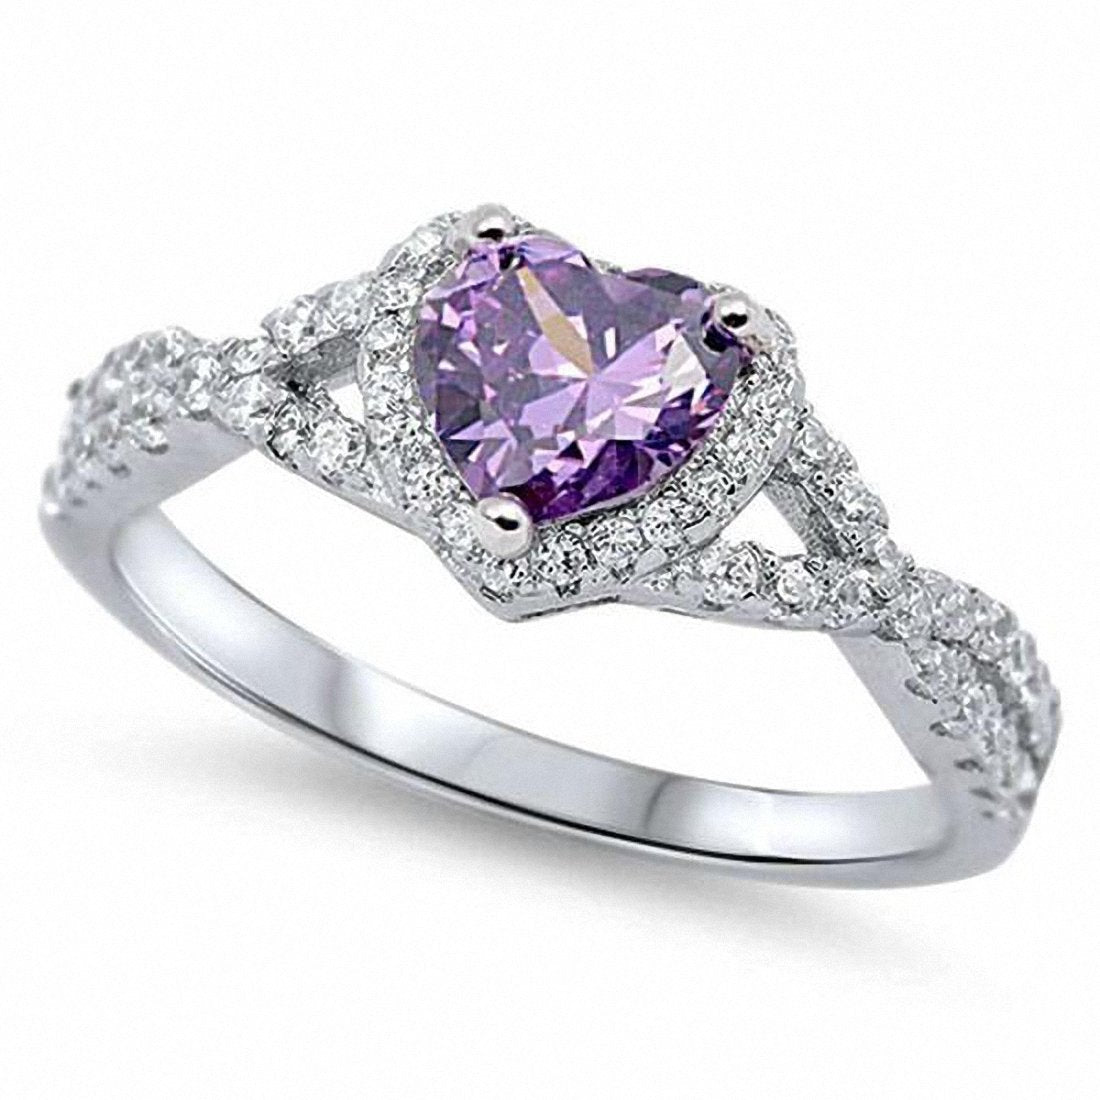 Halo Infinity Shank Heart Ring Round Simulated Amethyst CZ 925 Sterling Silver